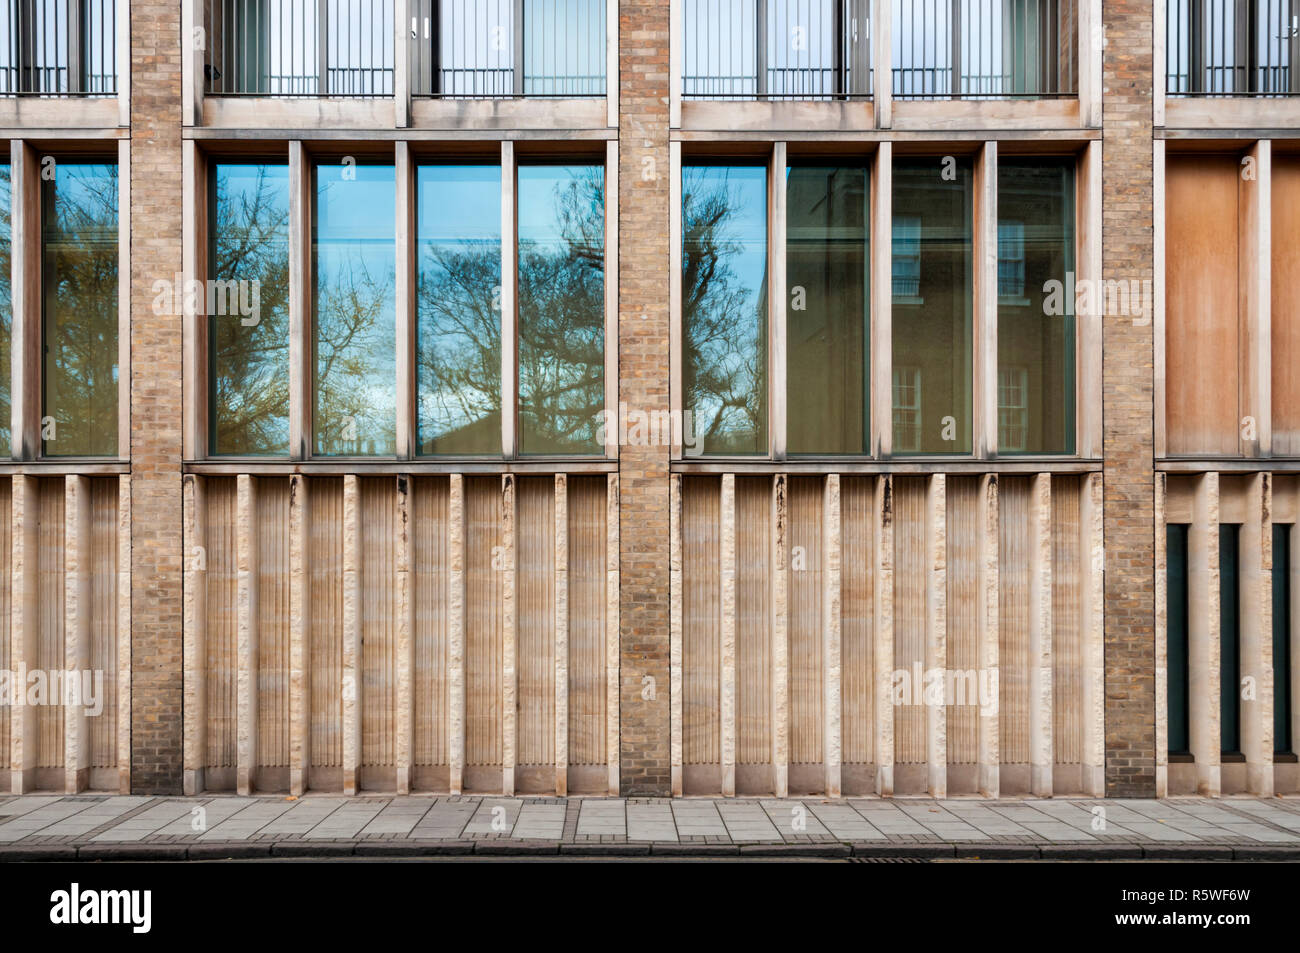 The West Court of Jesus College, Jesus Lane, Cambridge.  Designed by Niall McLaughlin Architects. - Stock Image